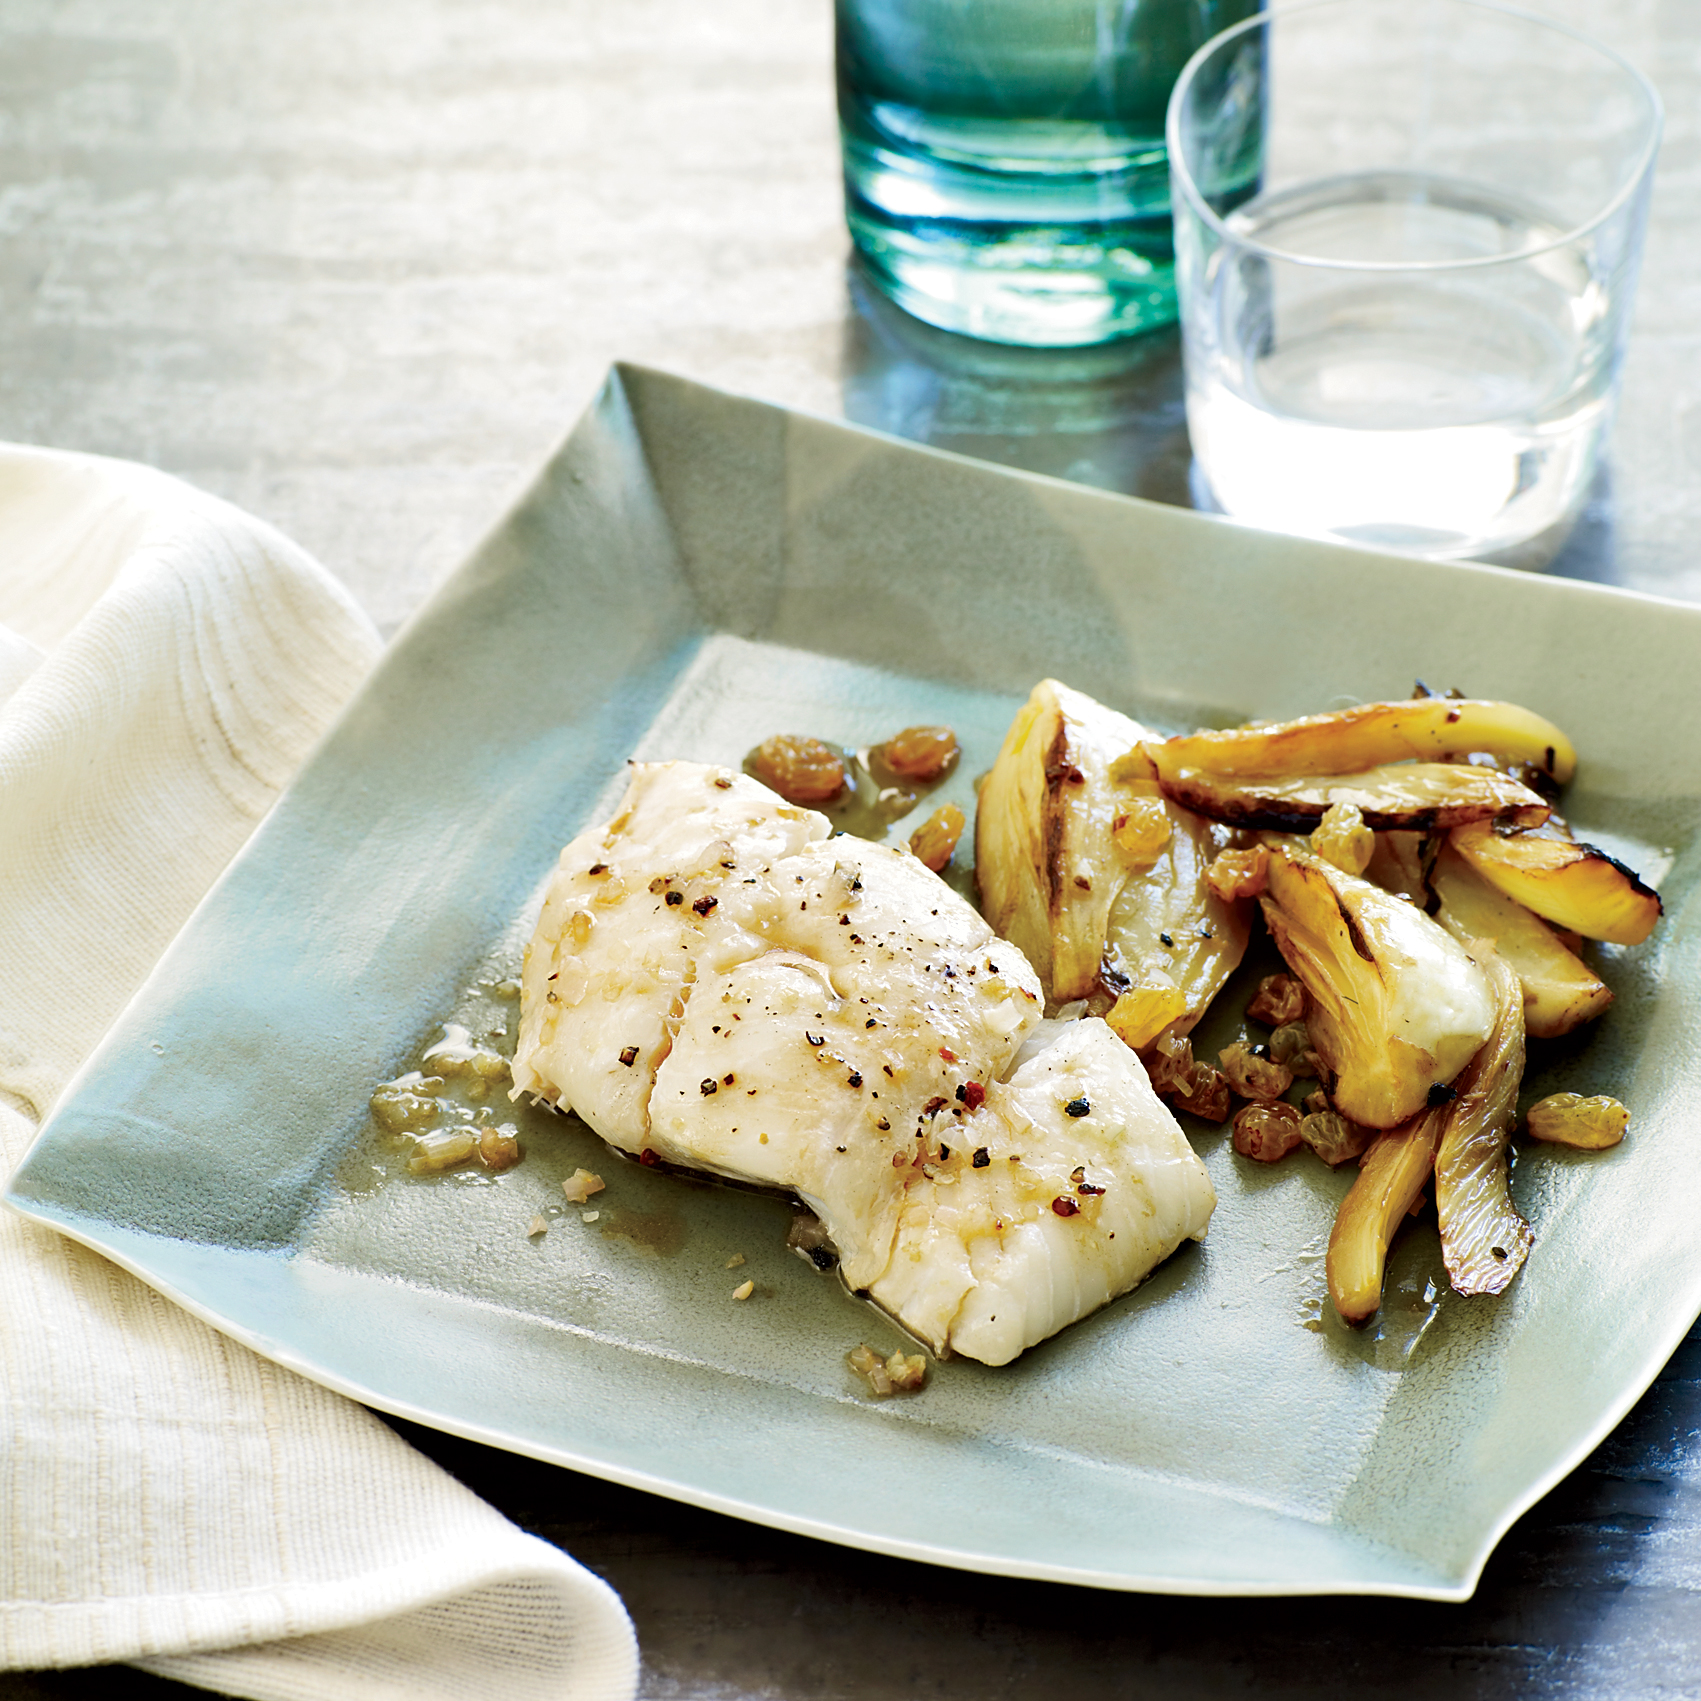 201104-r-roasted-halibut.jpg